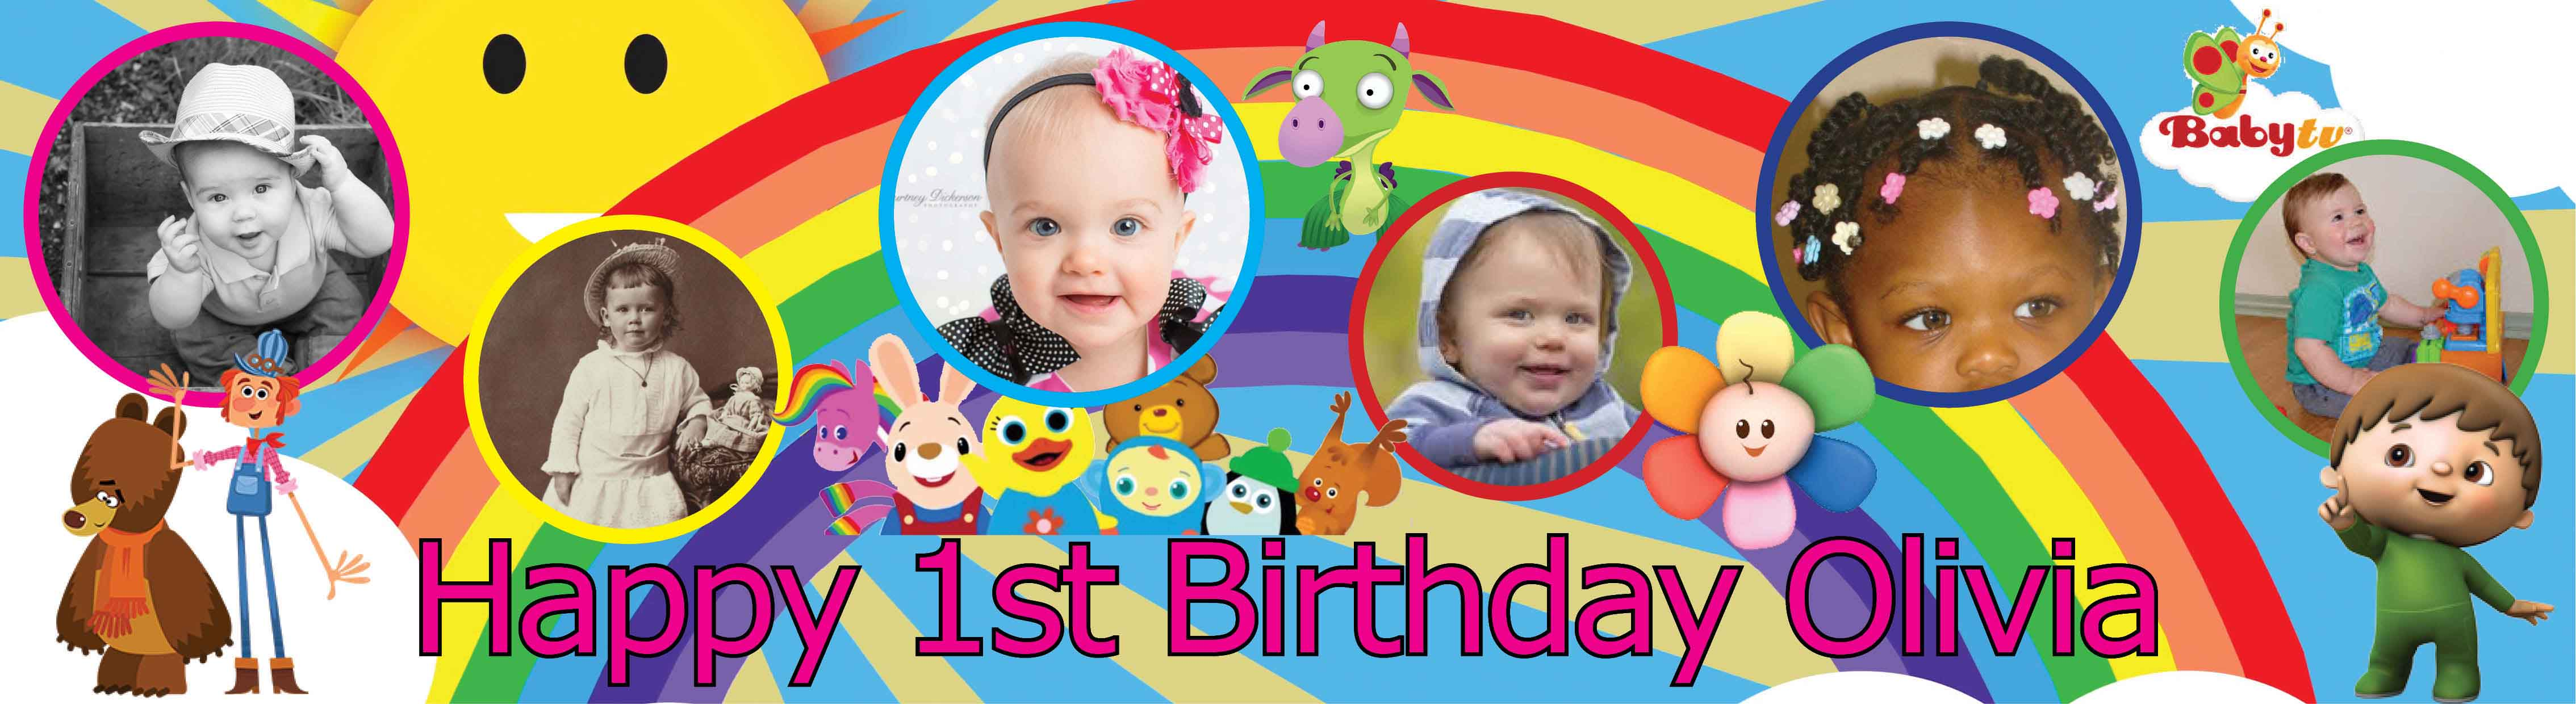 Baby Tv Themed Birthday Banner 2